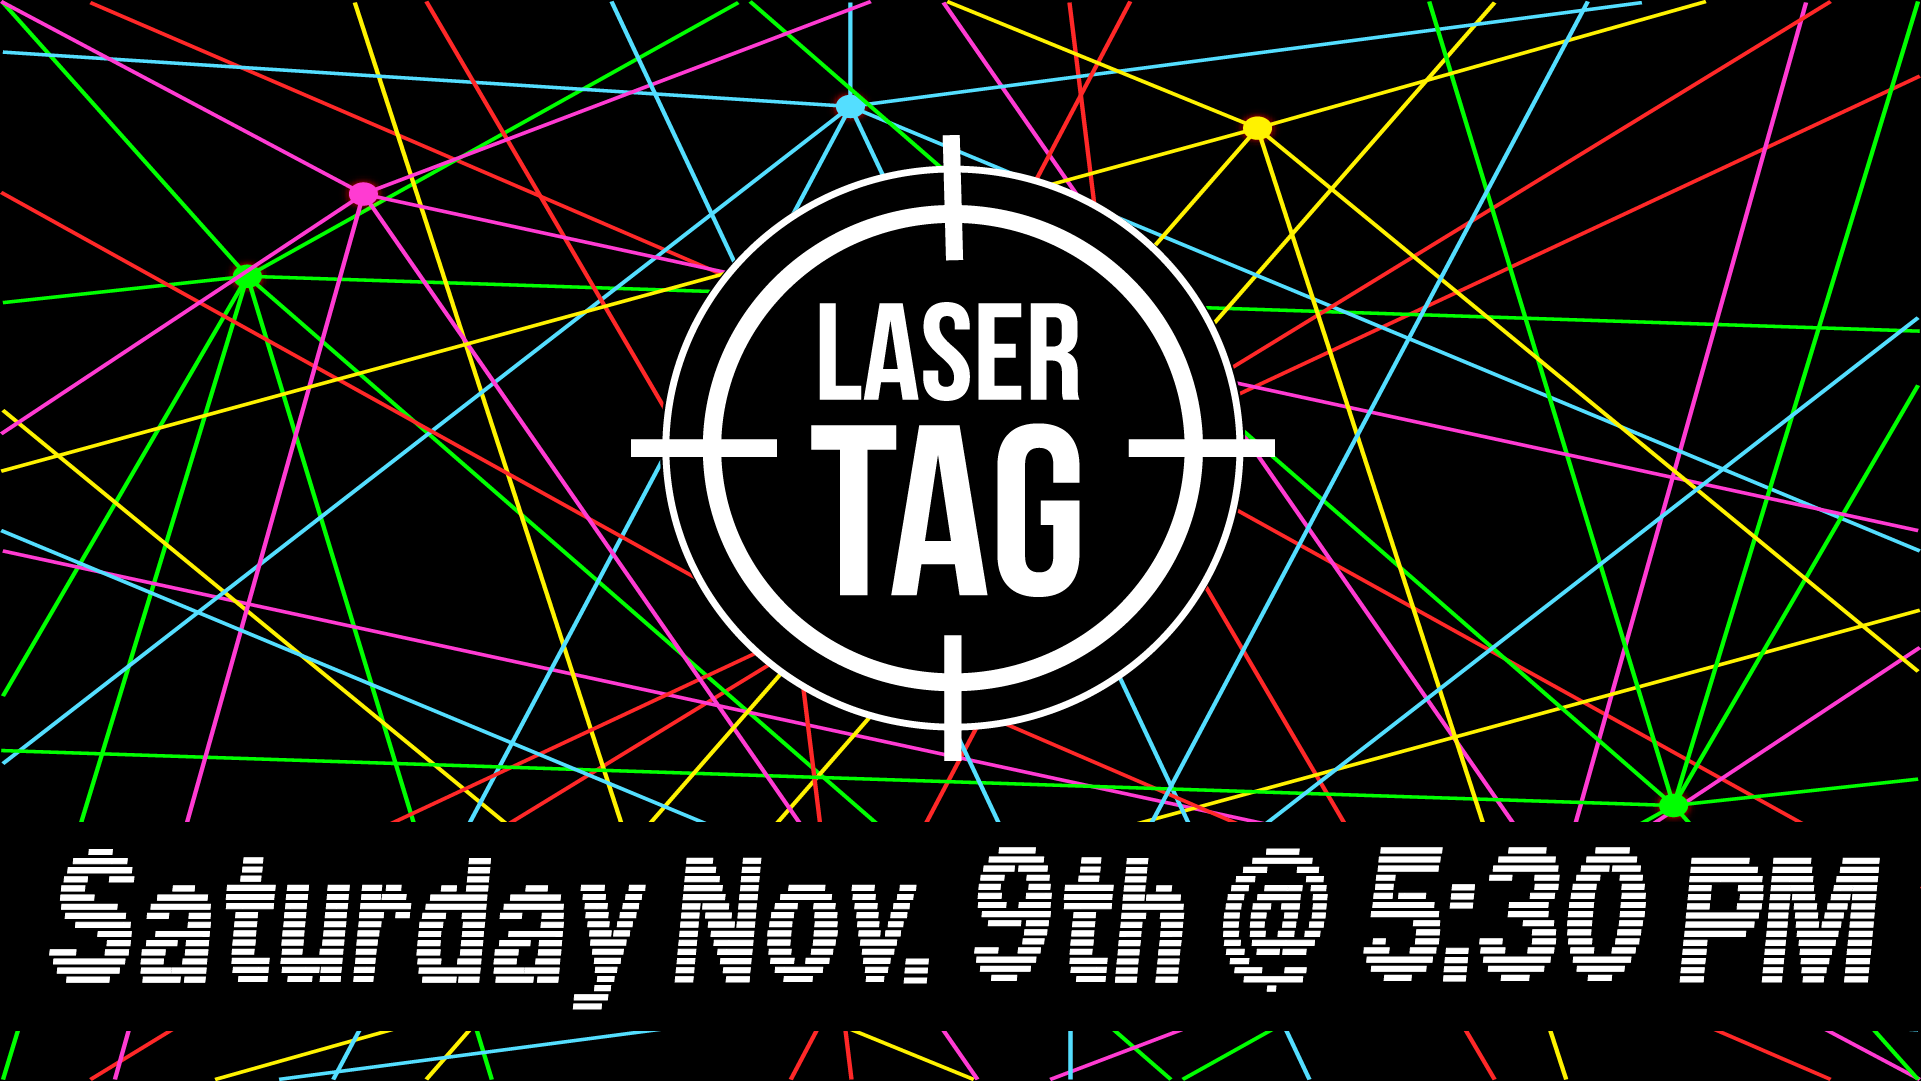 We will have a Laser Tag Tournament on the PORCH starting at 5:30 PM.  We will also have games and food in the gym.